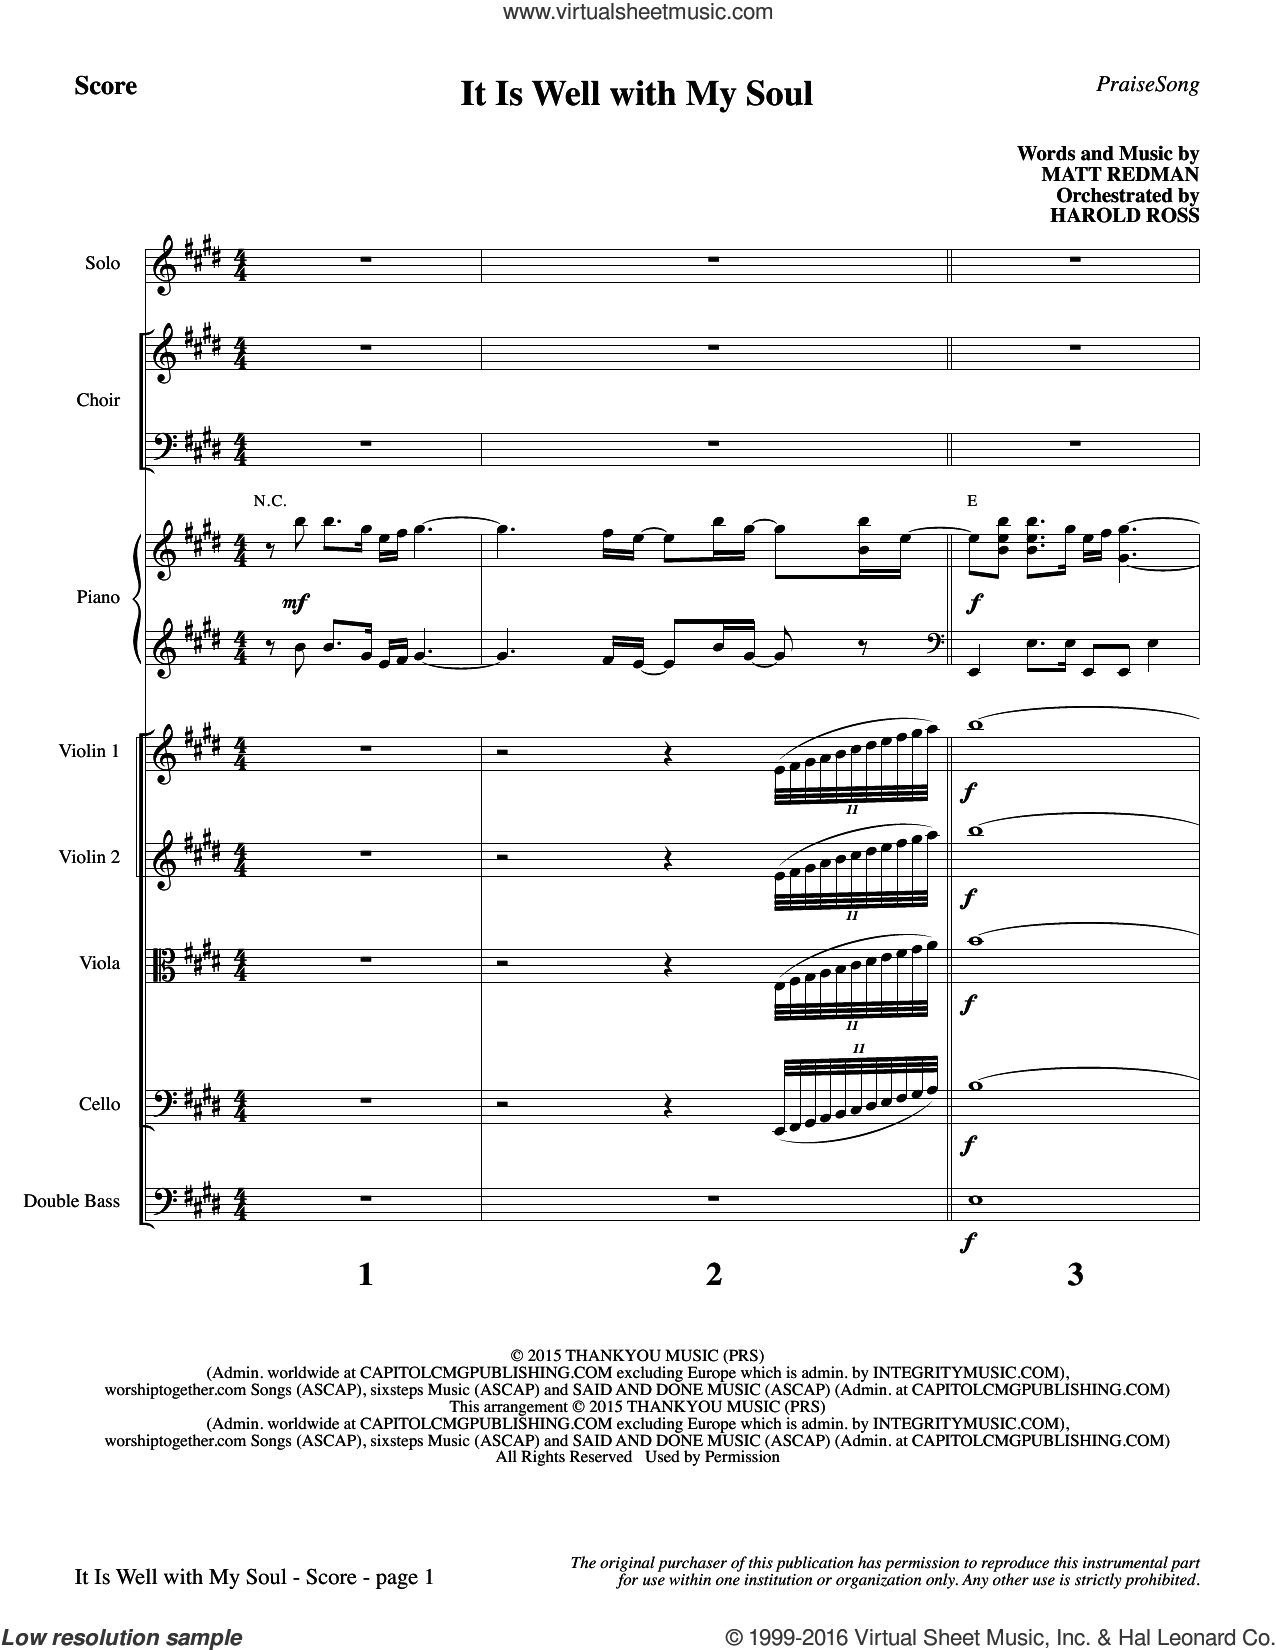 It Is Well with My Soul (COMPLETE) sheet music for orchestra by Harold Ross, Horatio G. Spafford, Philip P. Bliss, Beth Redman and Matt Redman. Score Image Preview.